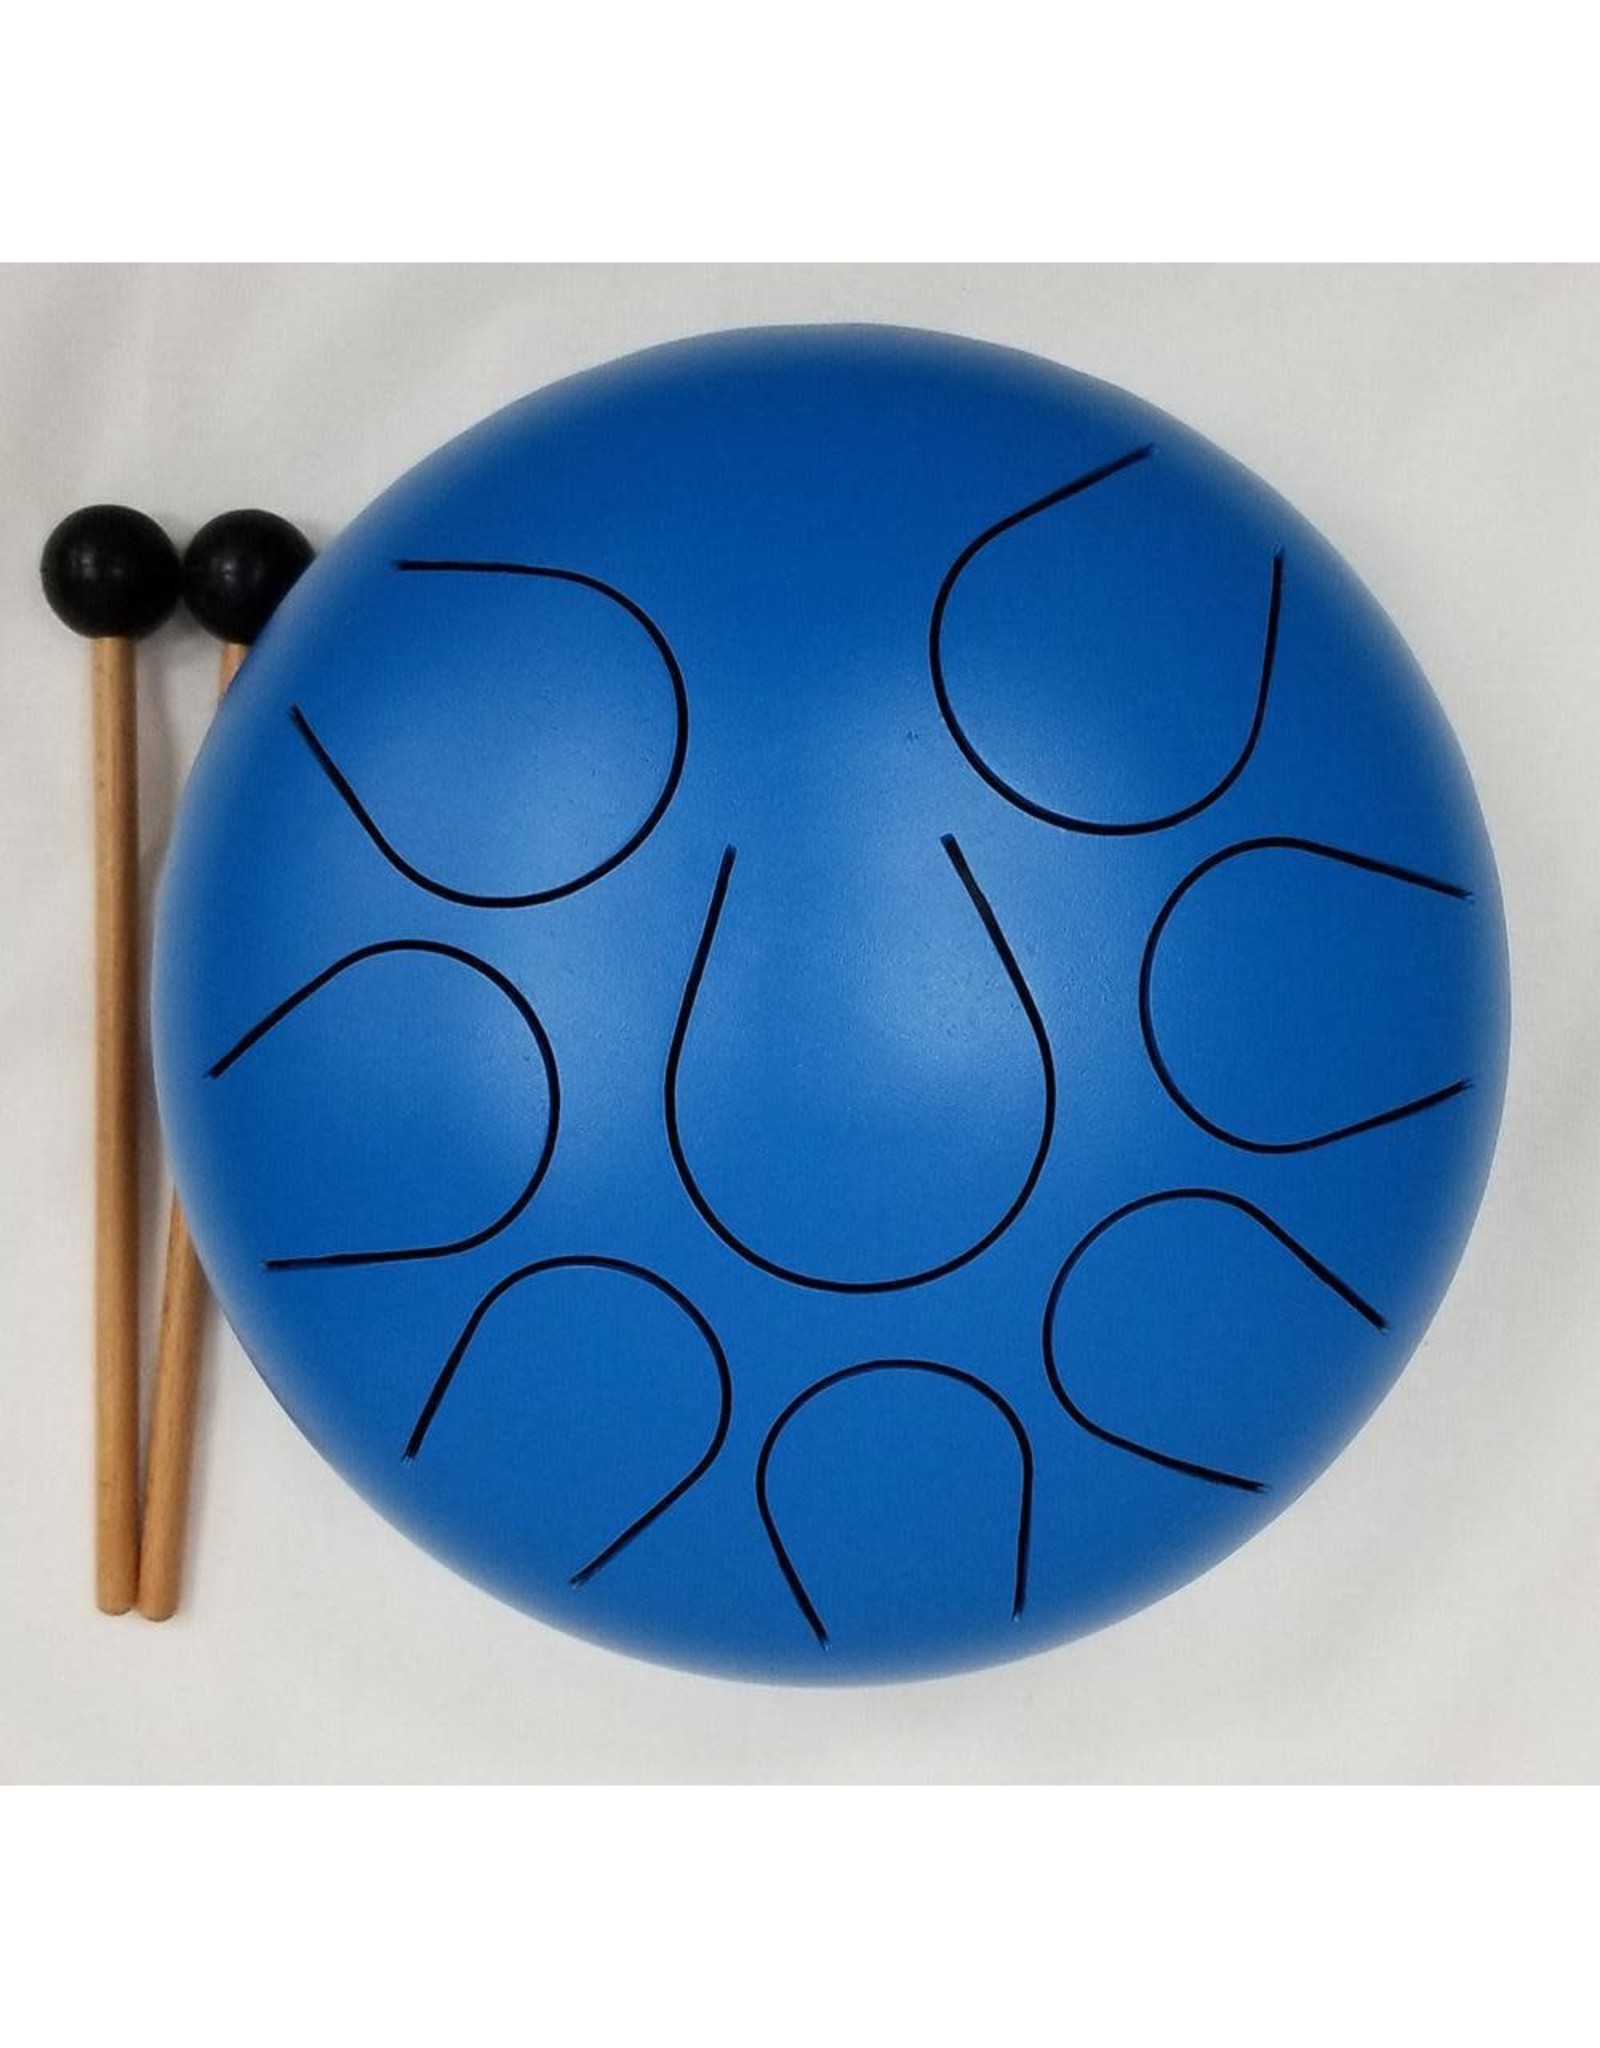 Kala Imports Tongue Drum 22cm with Carry Bag